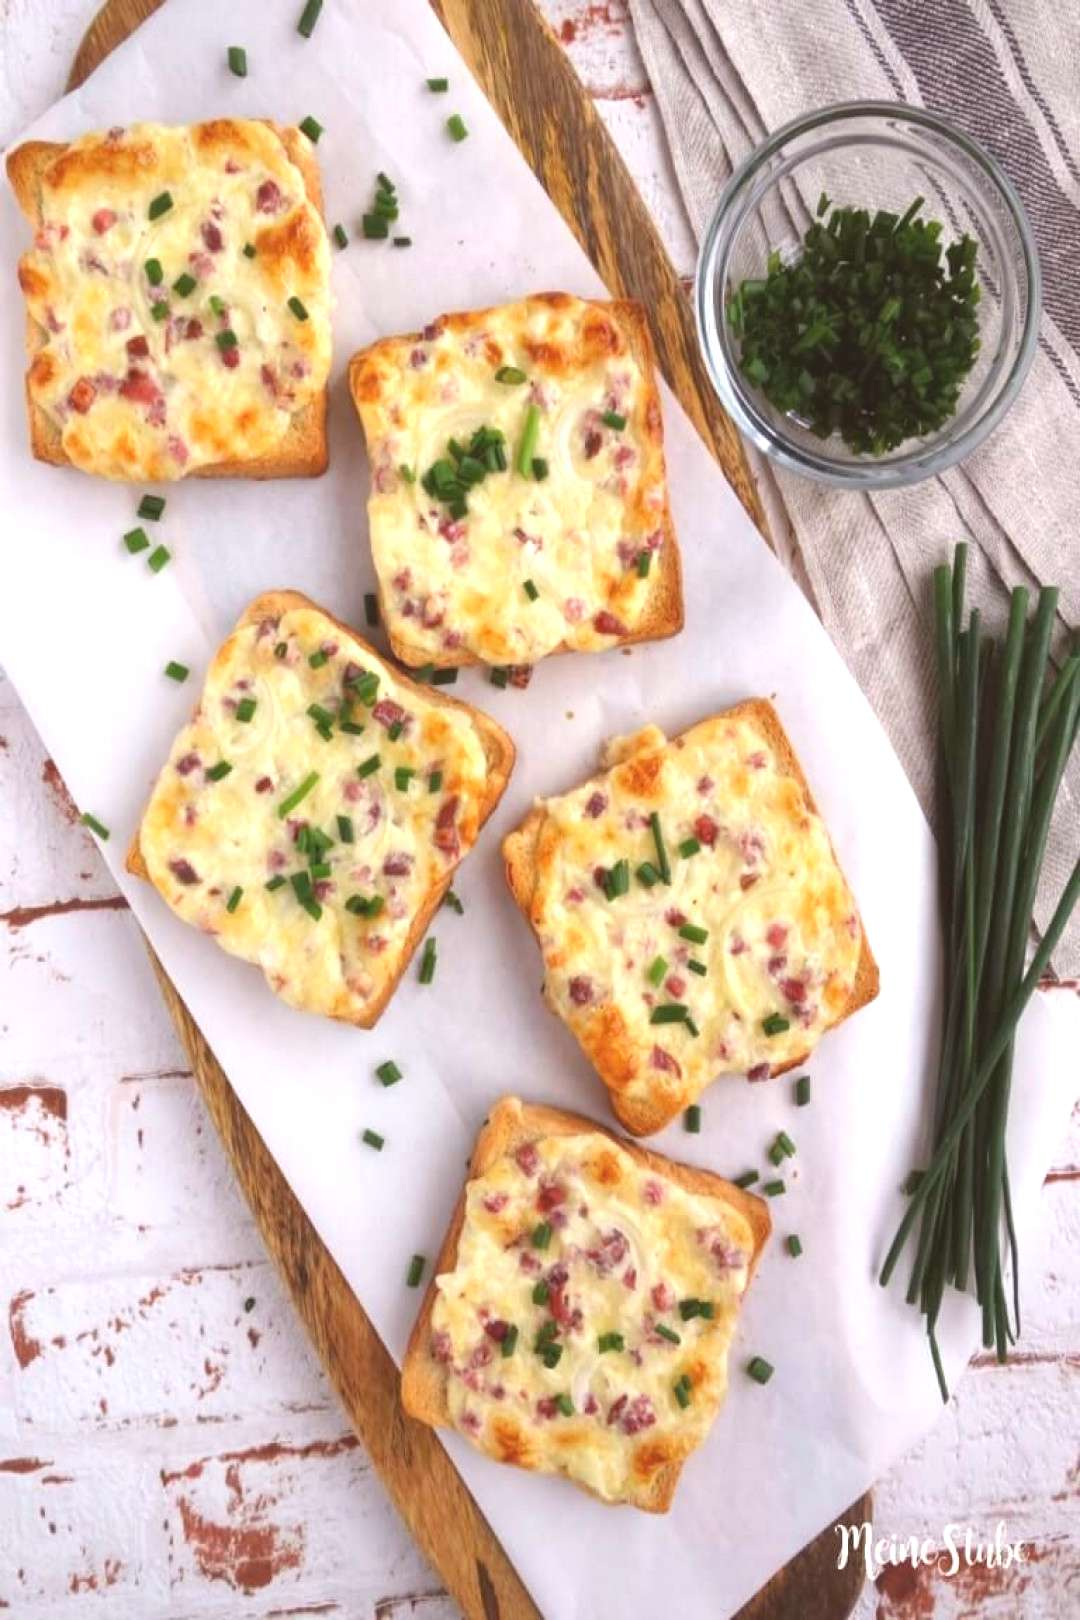 Tarte flambée with bacon and onions - MeineStube - Recipe for delicious Flammkuchen toast from me